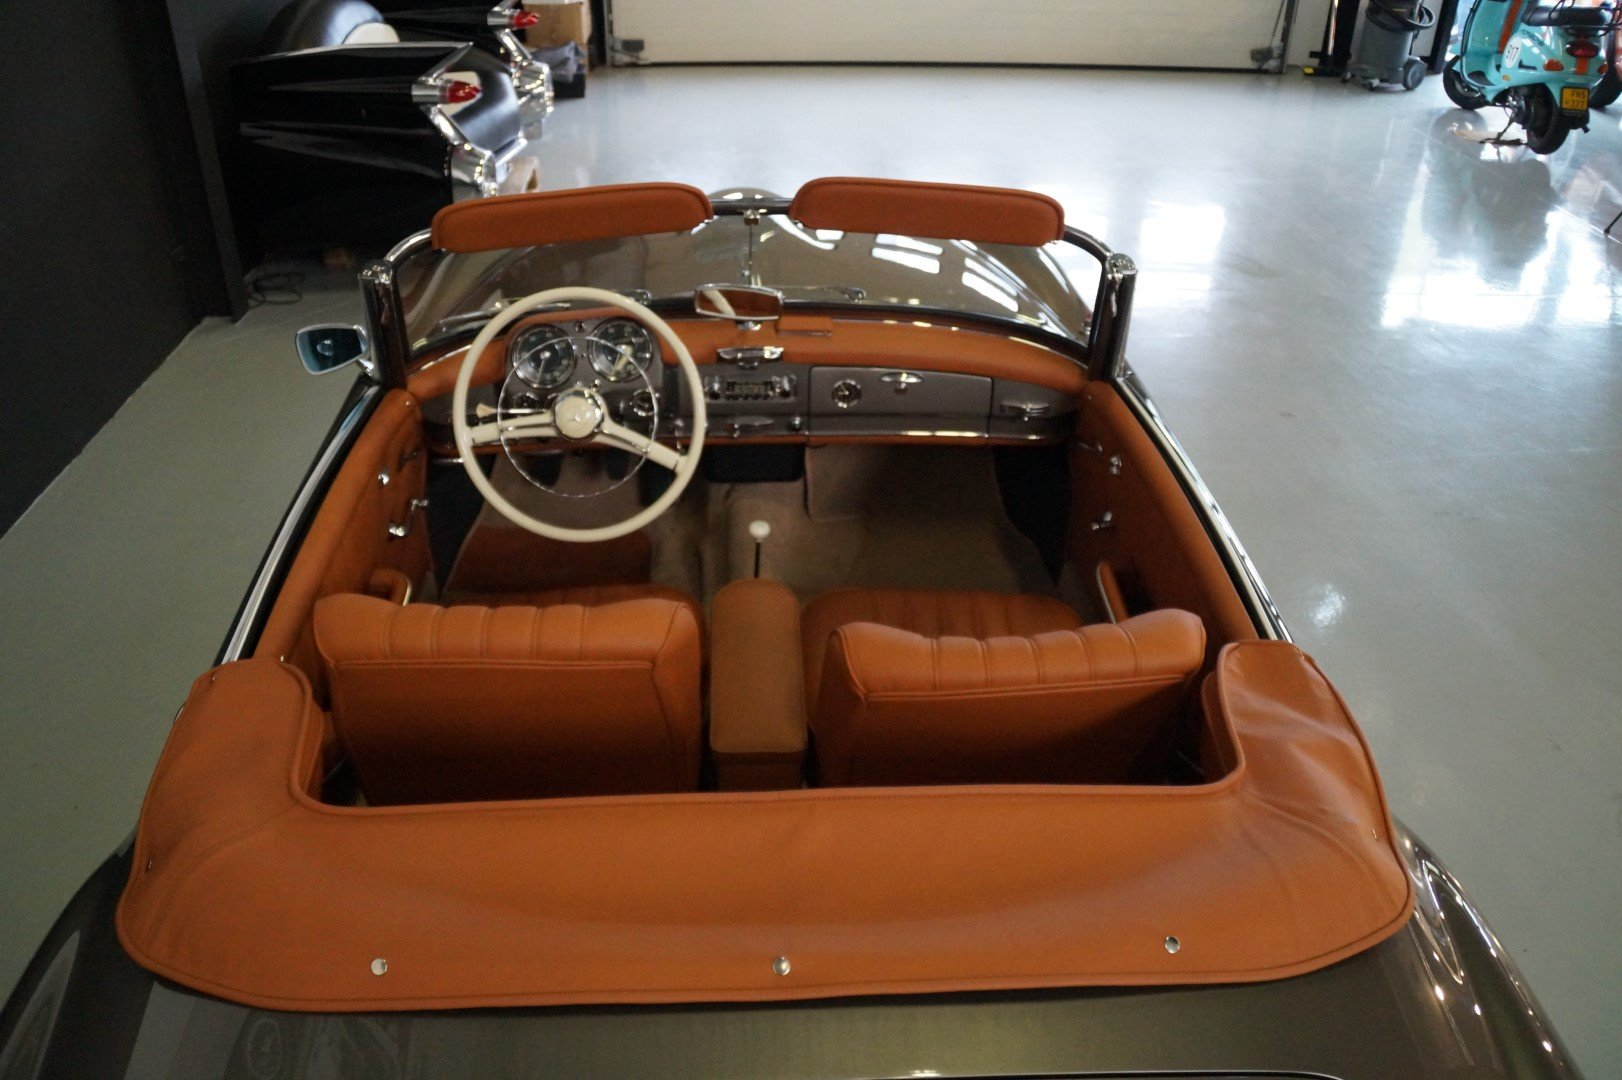 MERCEDES-BENZ 190 SL 190SL Concourse restored (1957) For Sale (picture 3 of 6)